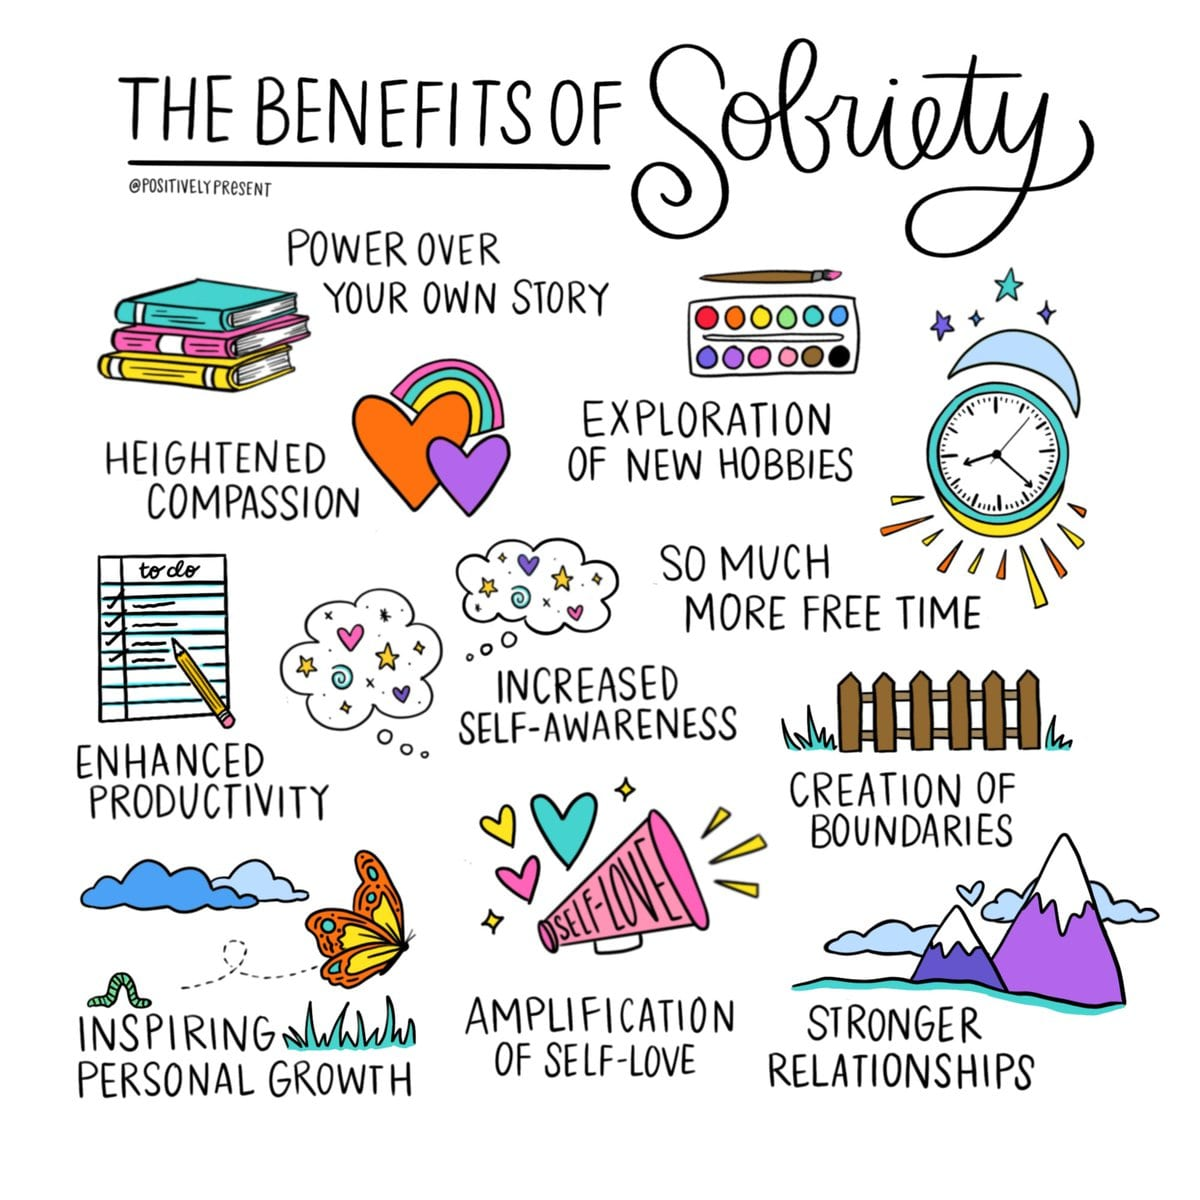 The Benefits Of Sobriety